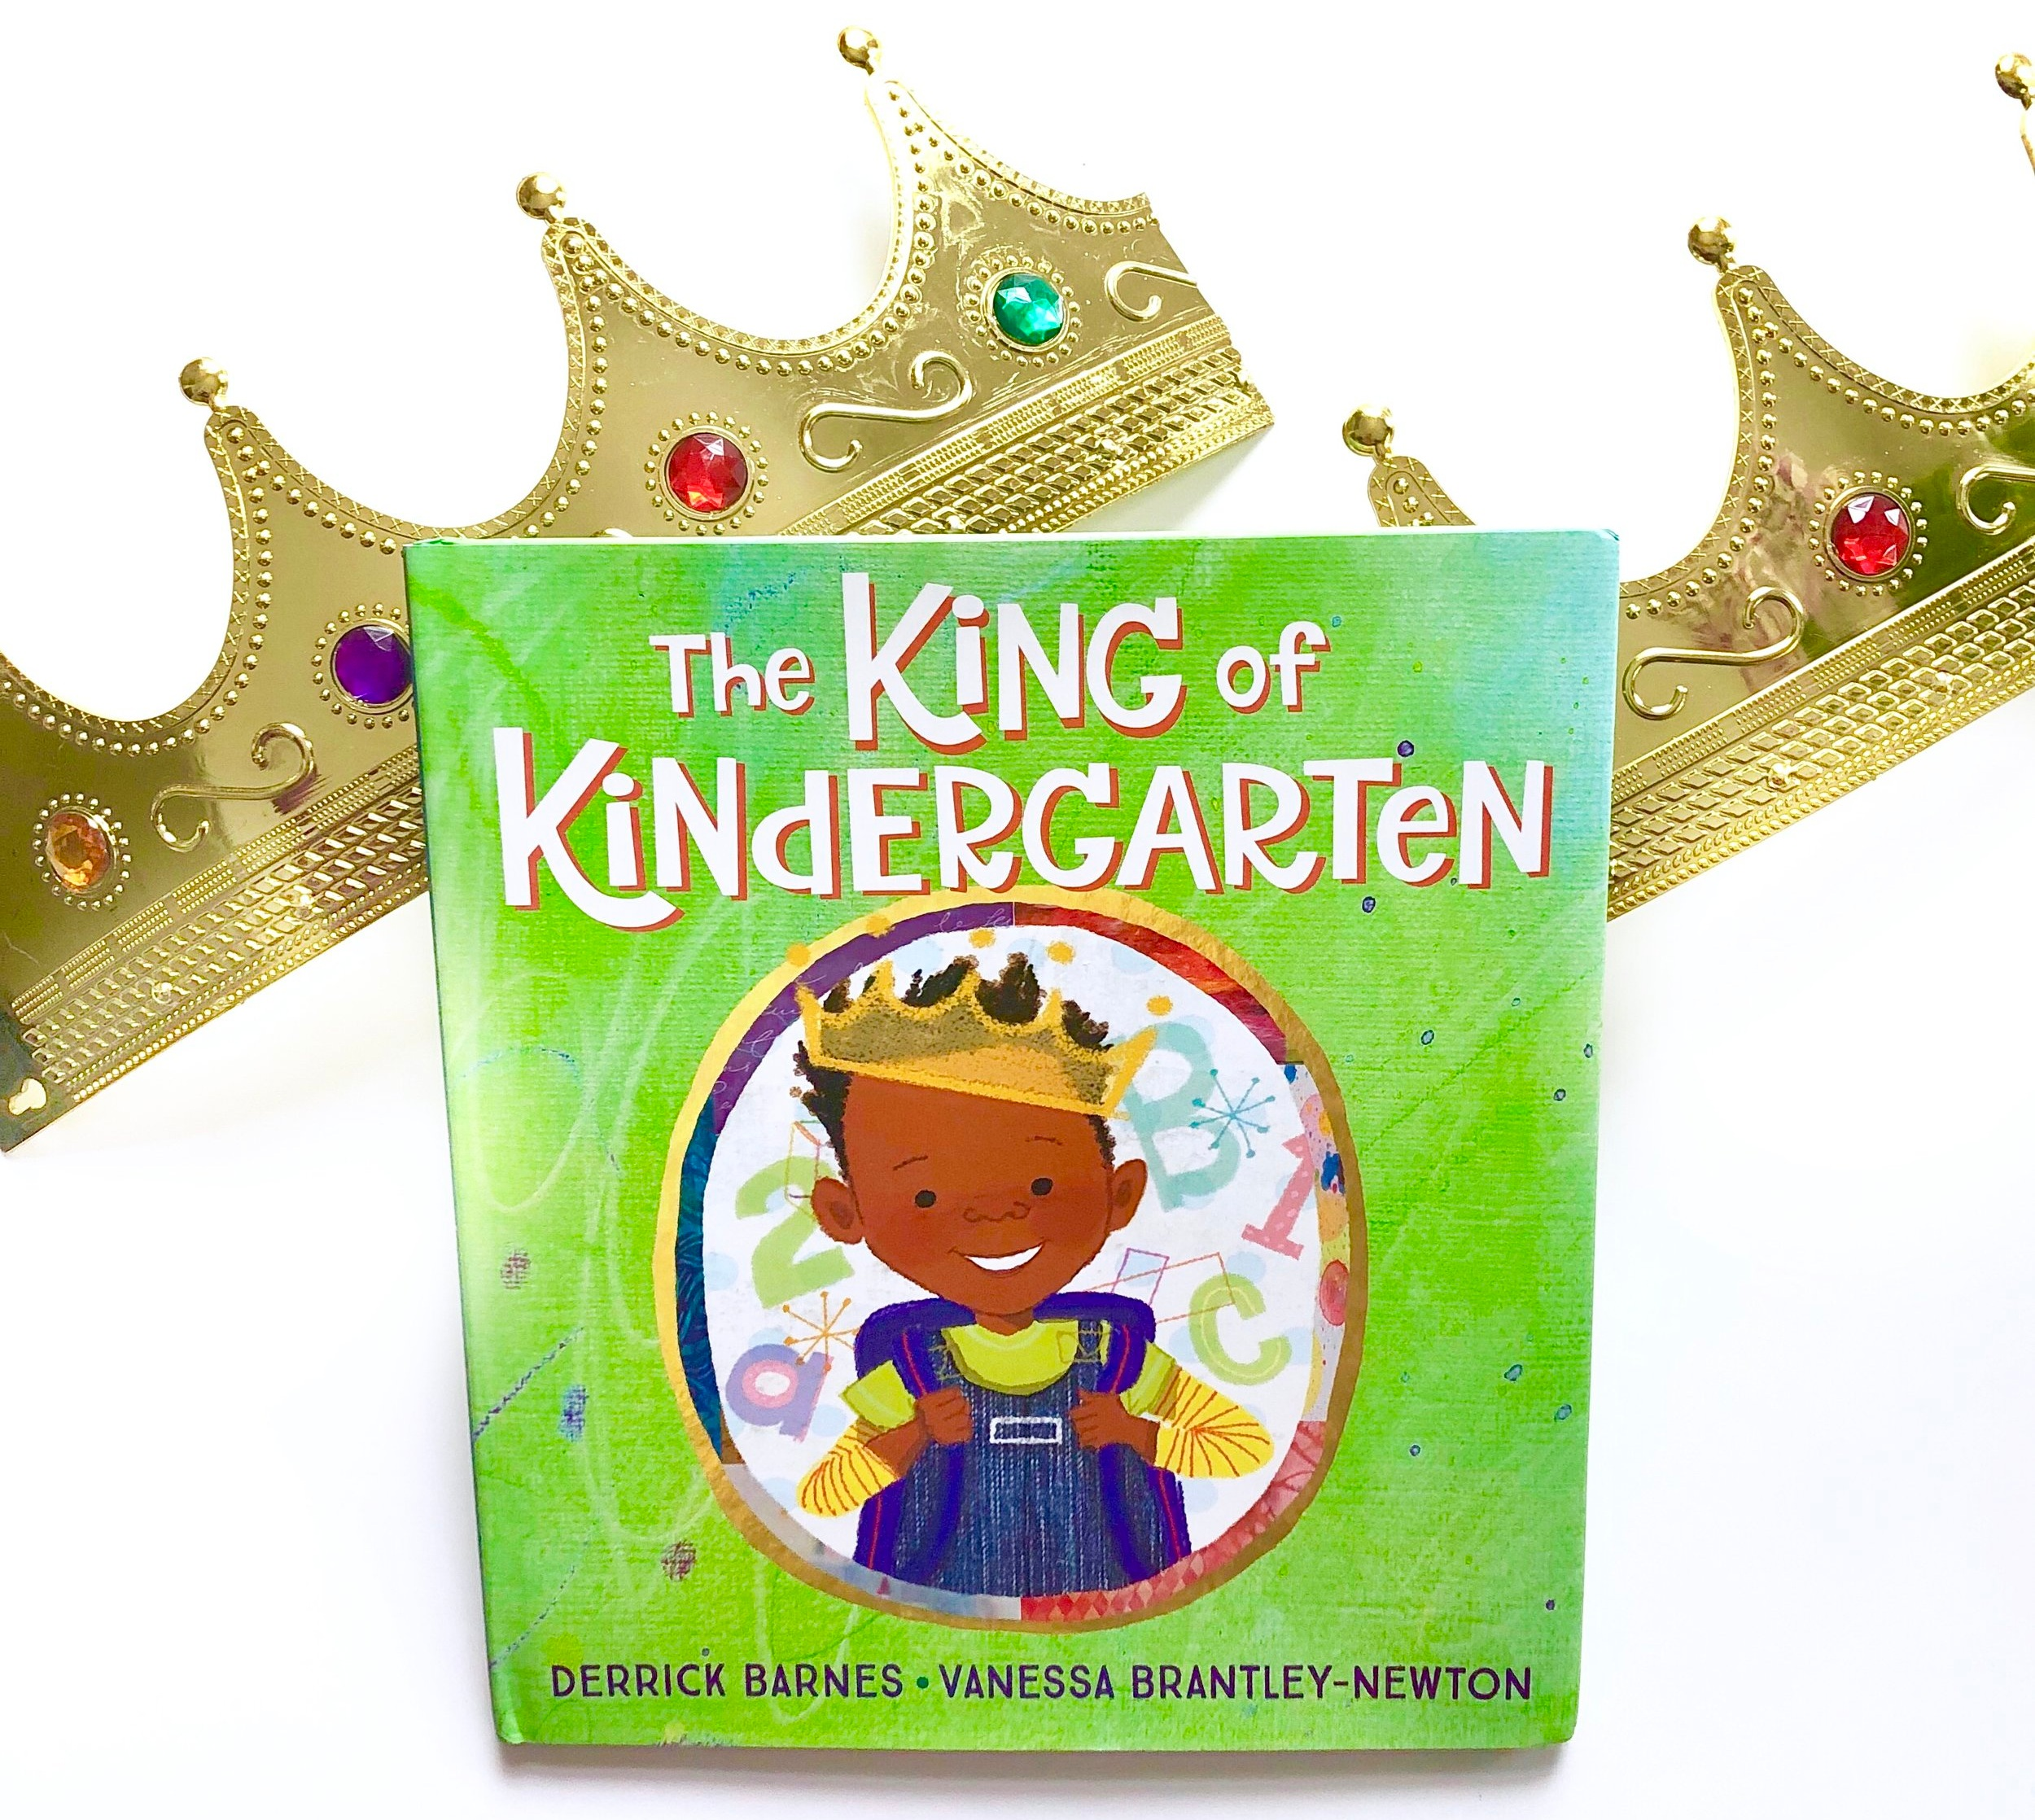 The King of Kindergarten by Derrick Barnes